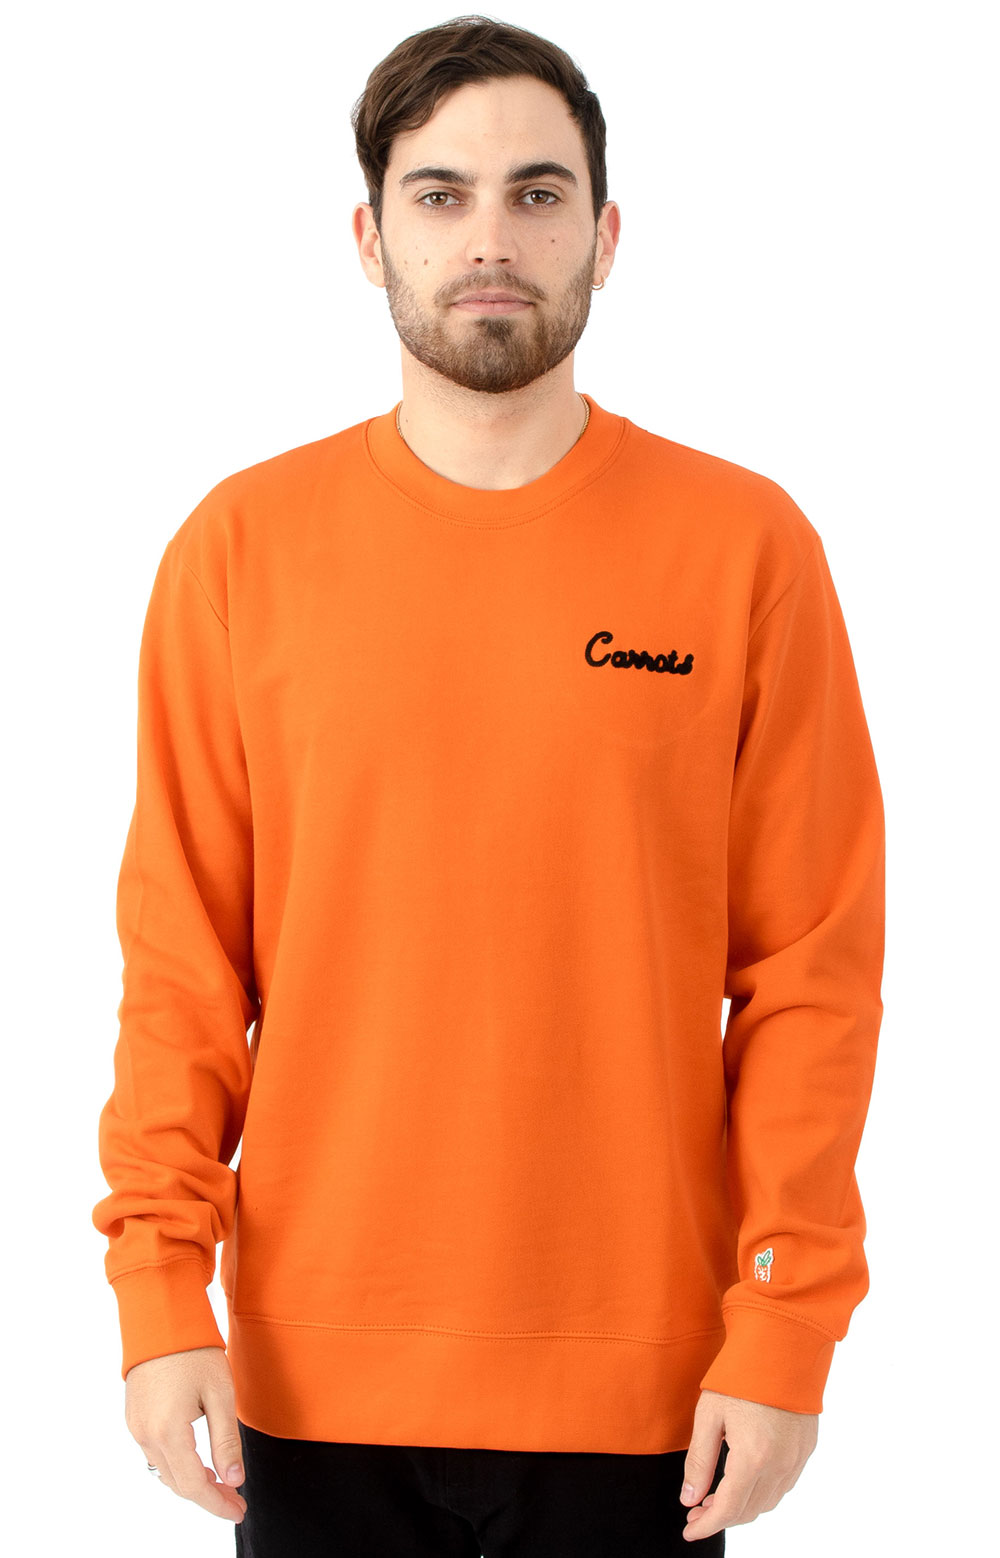 Cursive Crewneck - Orange